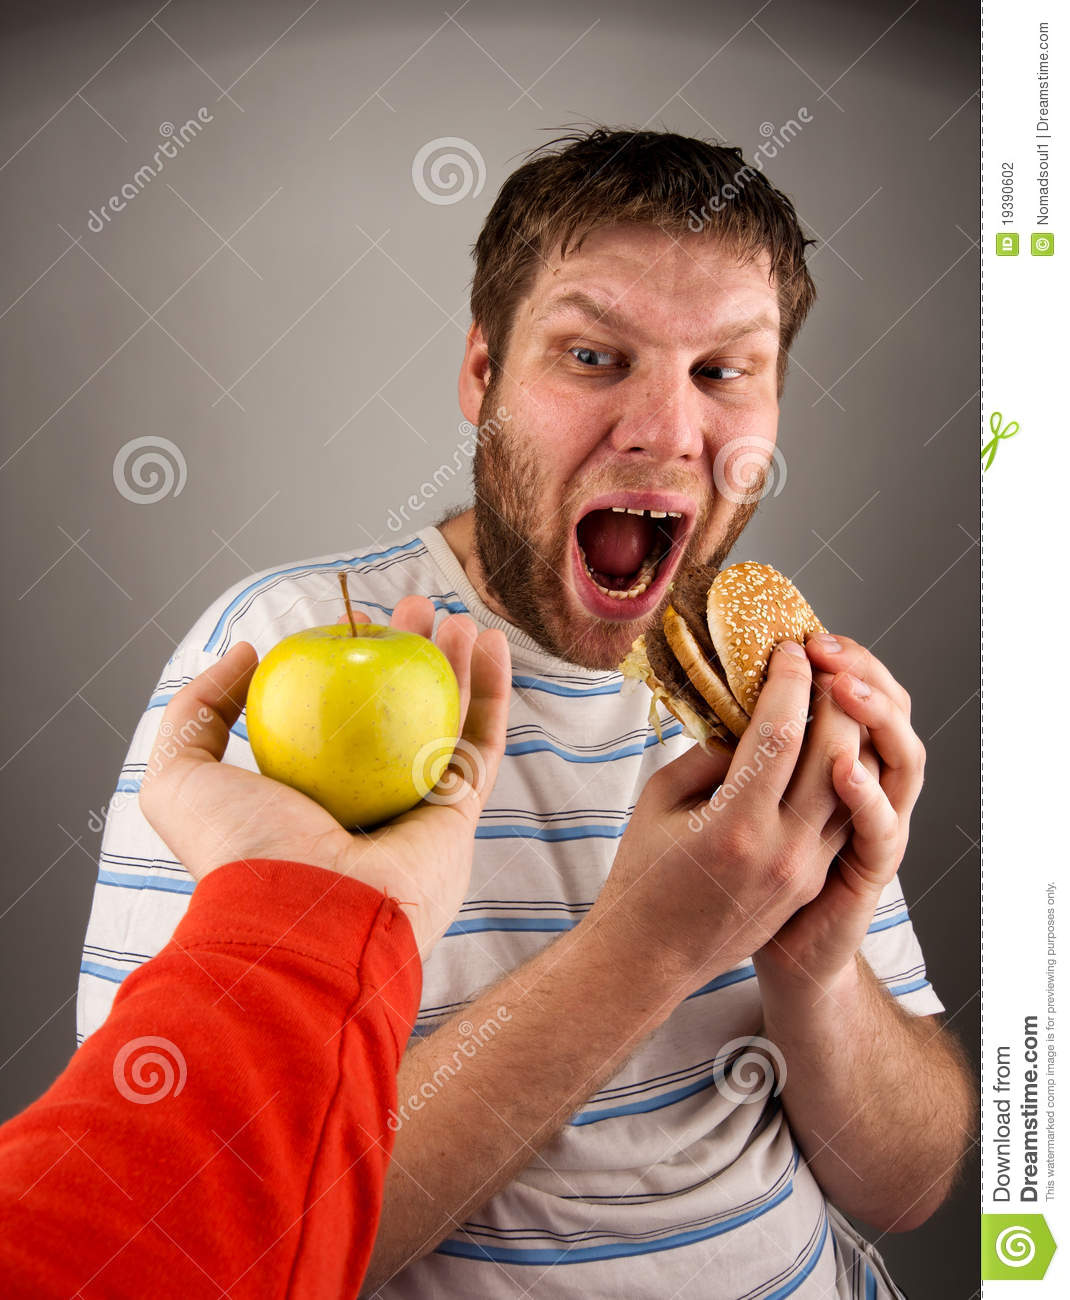 Fast food vs healthy food stock photos royalty free pictures for Lean cuisine vs fast food